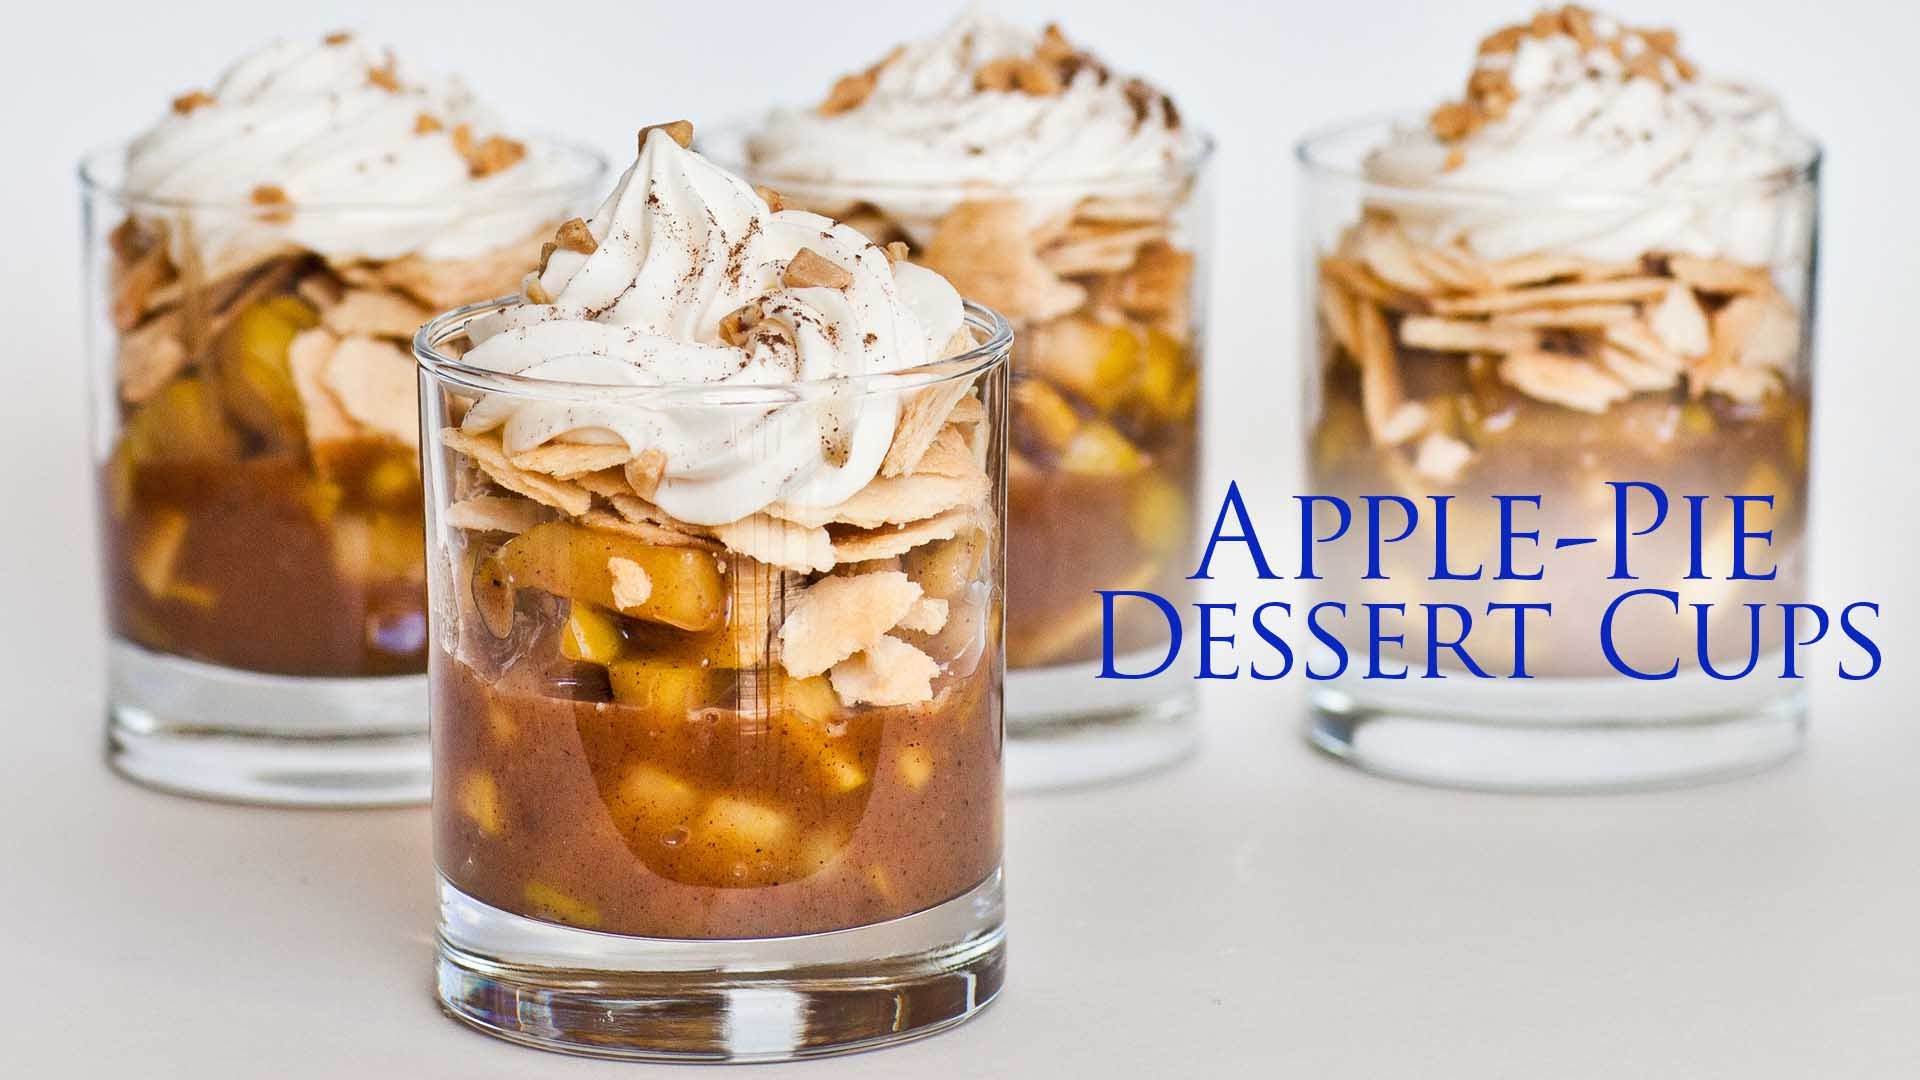 Such A Unique Way To Deconstruct A Traditional Apple Pie With These Apple Pie Dessert Cups